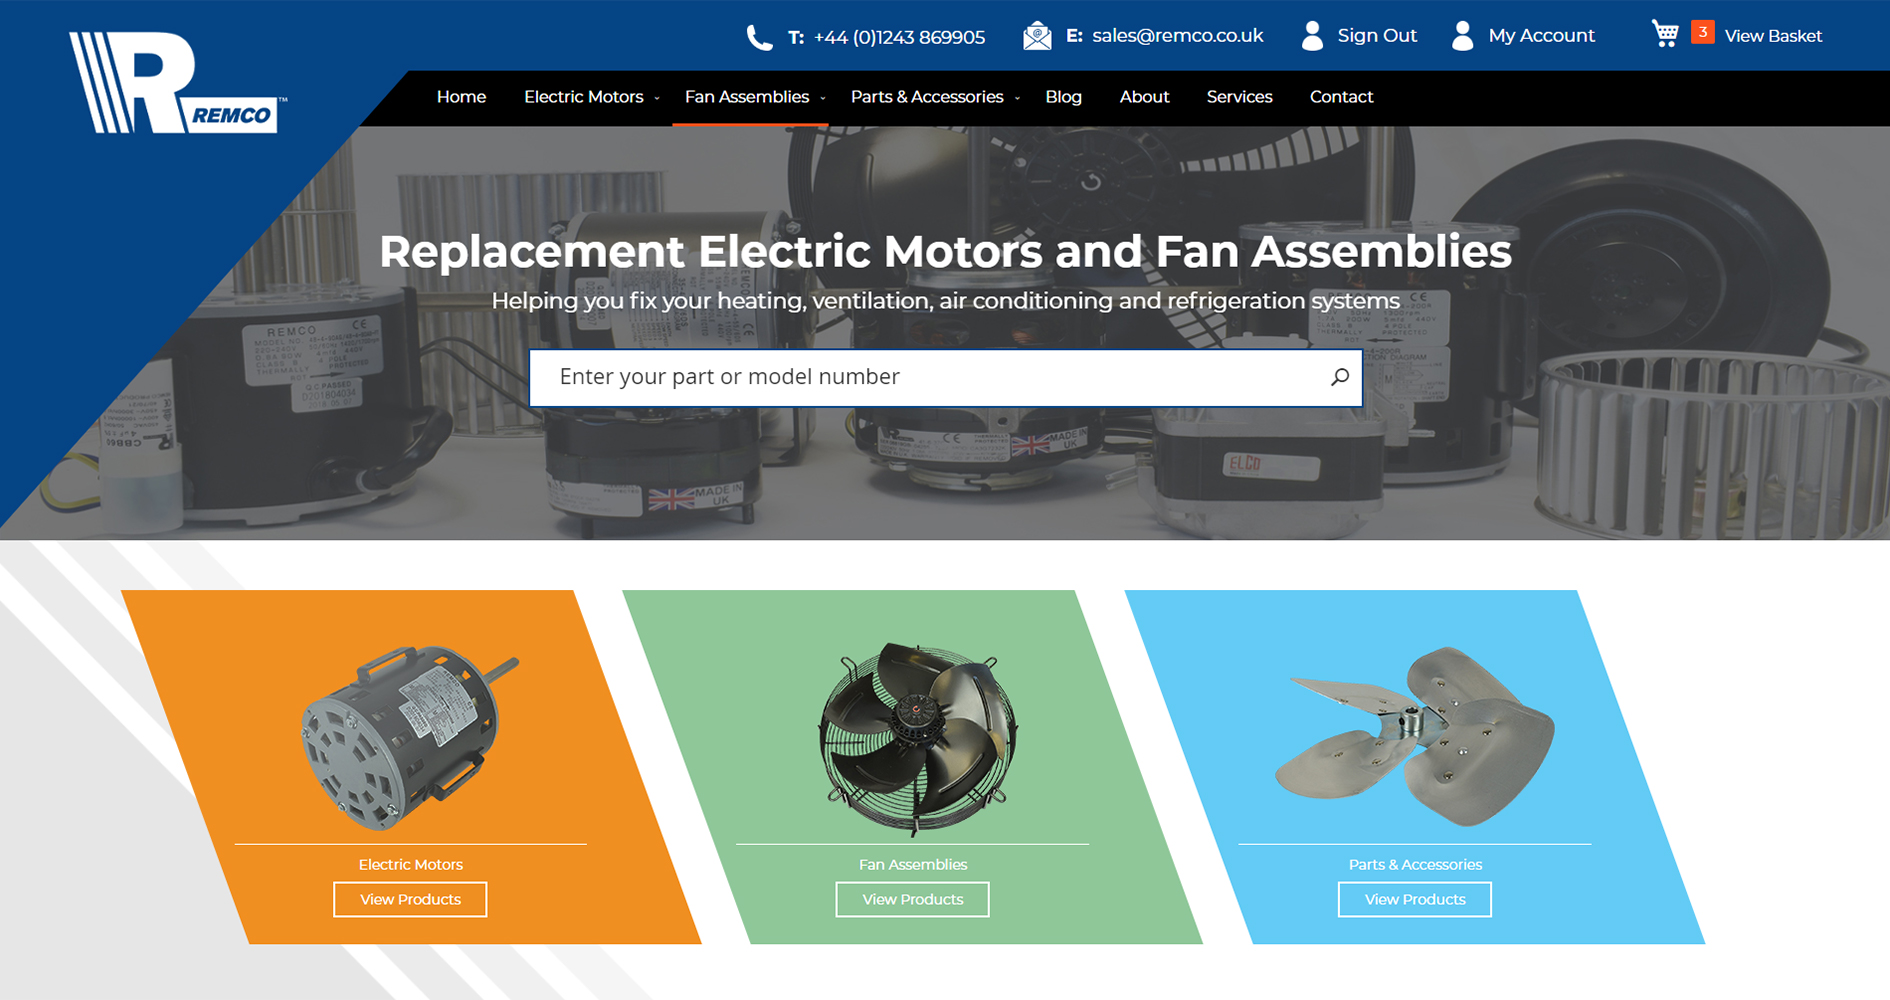 REMCO Launches New E-commerce Website